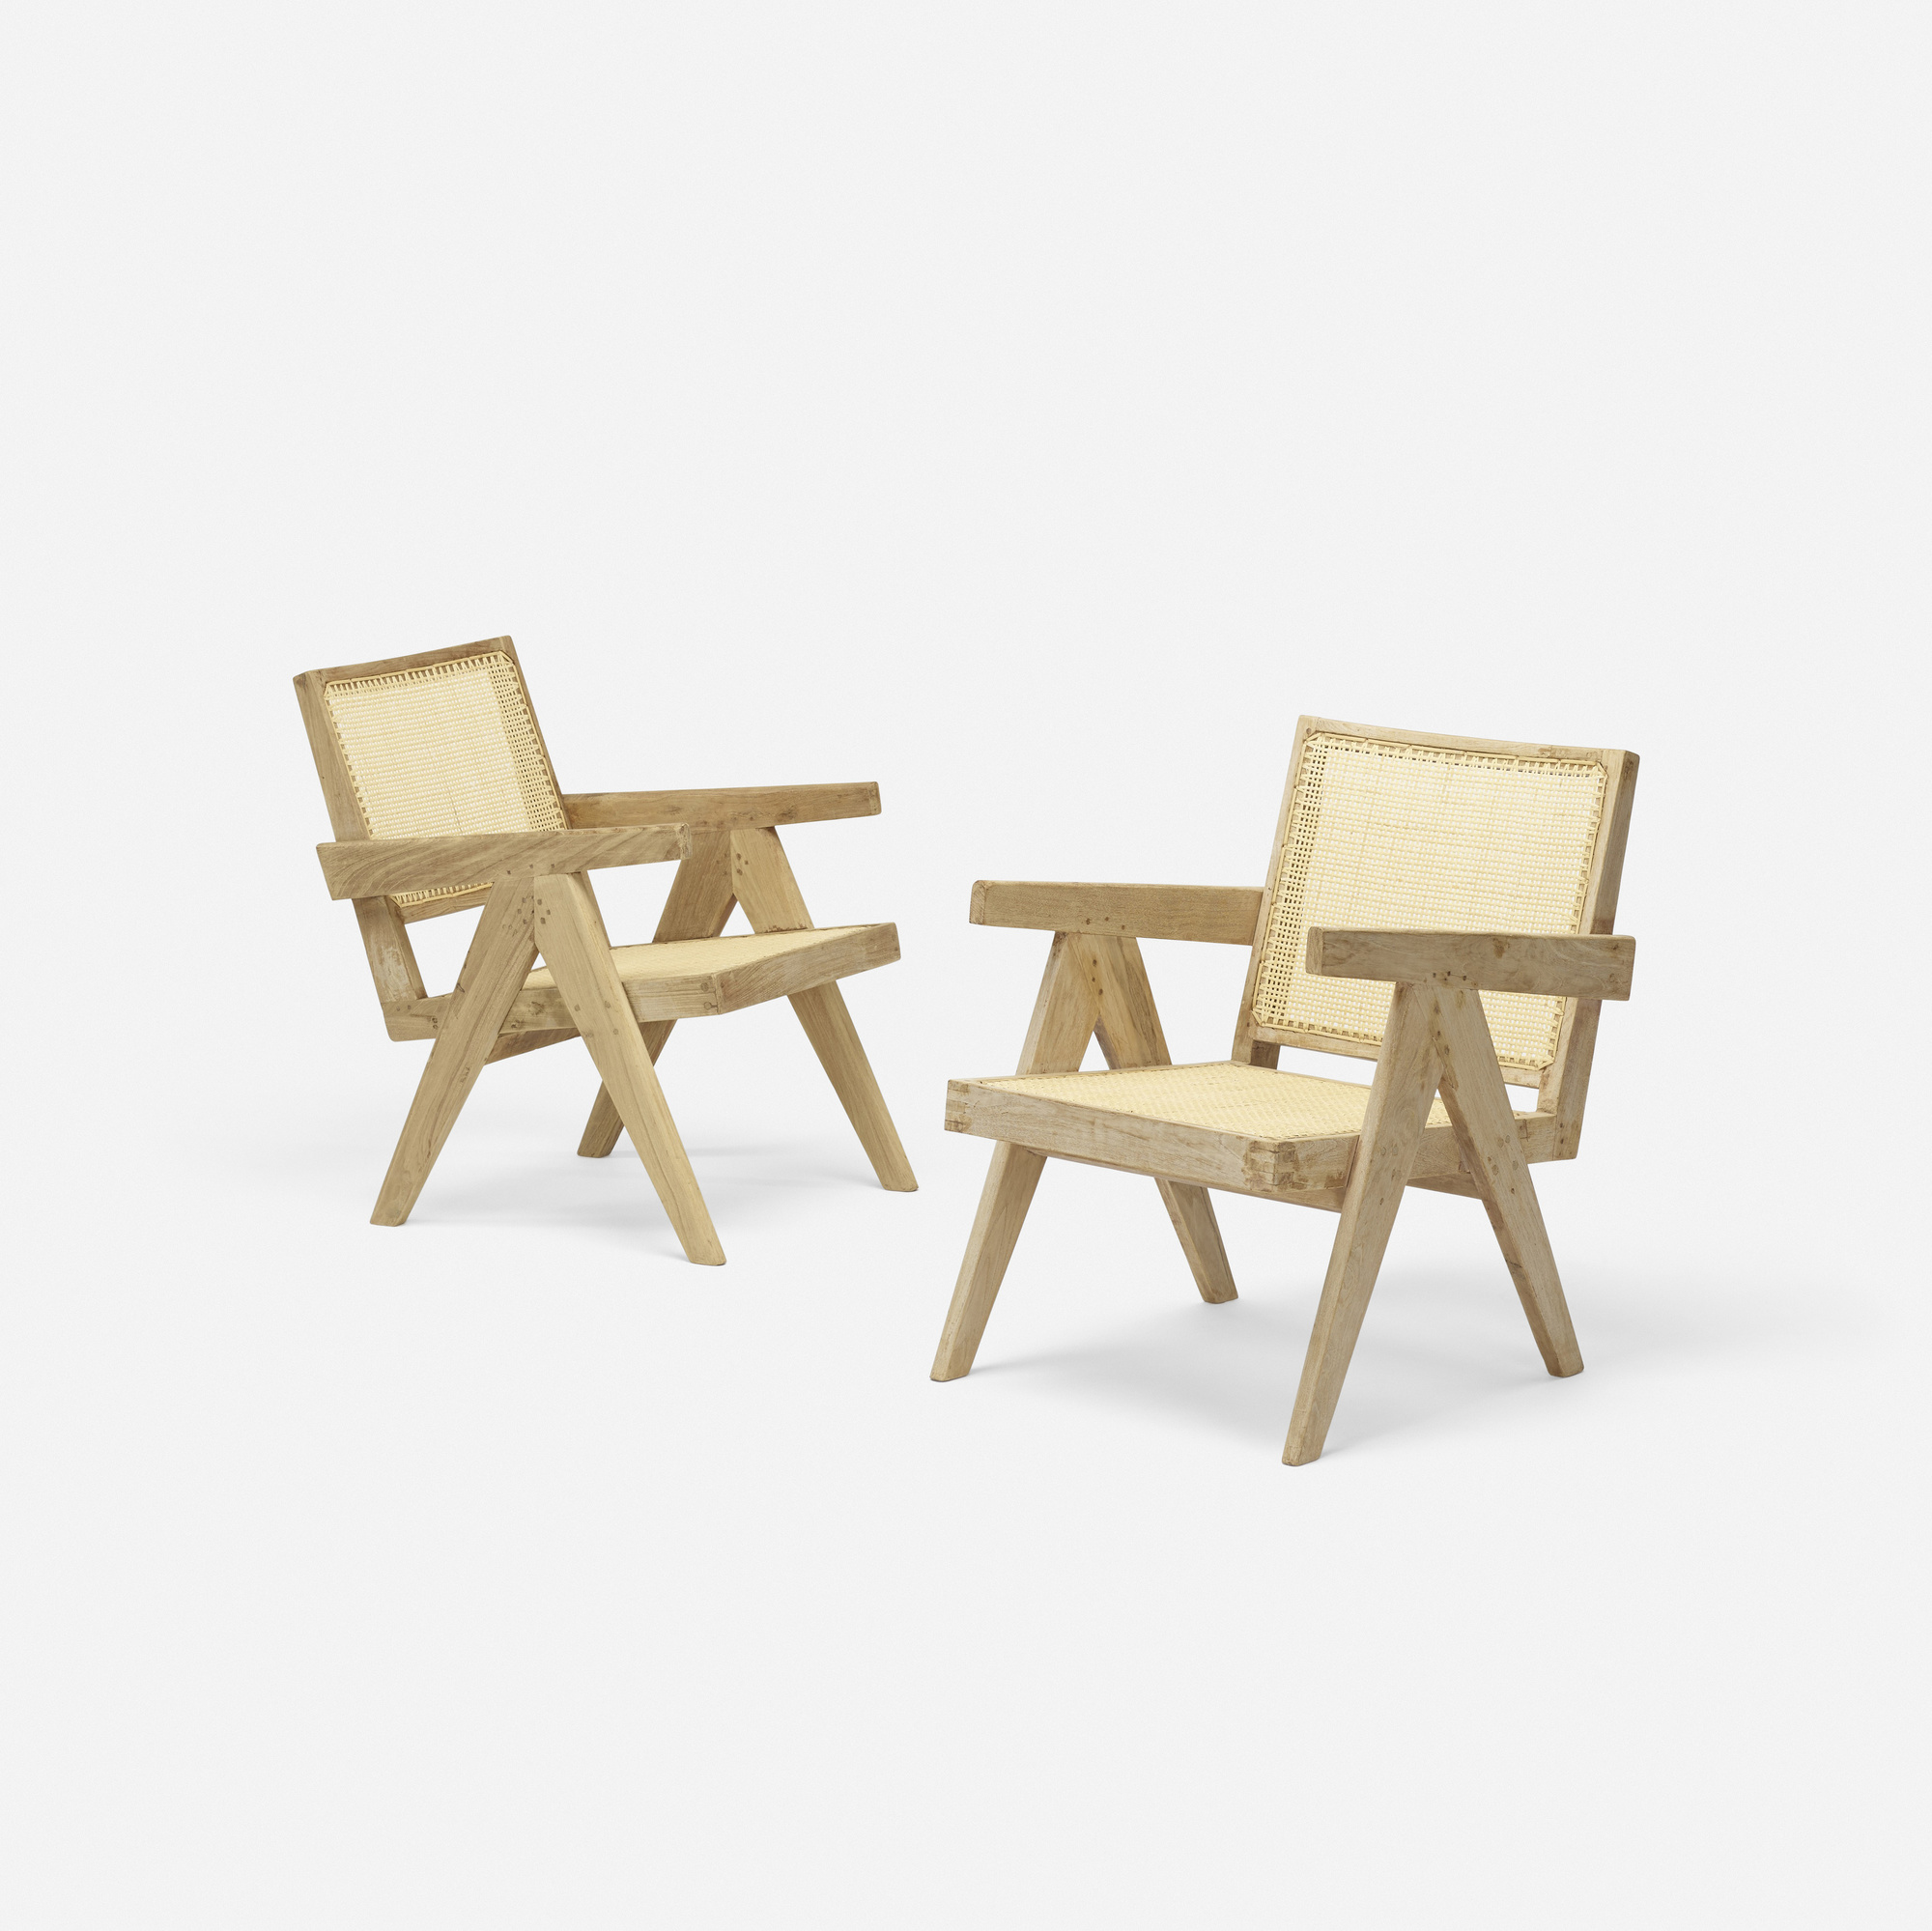 113: Pierre Jeanneret / Easy armchairs from Chandigarh, set of two (2 of 4)